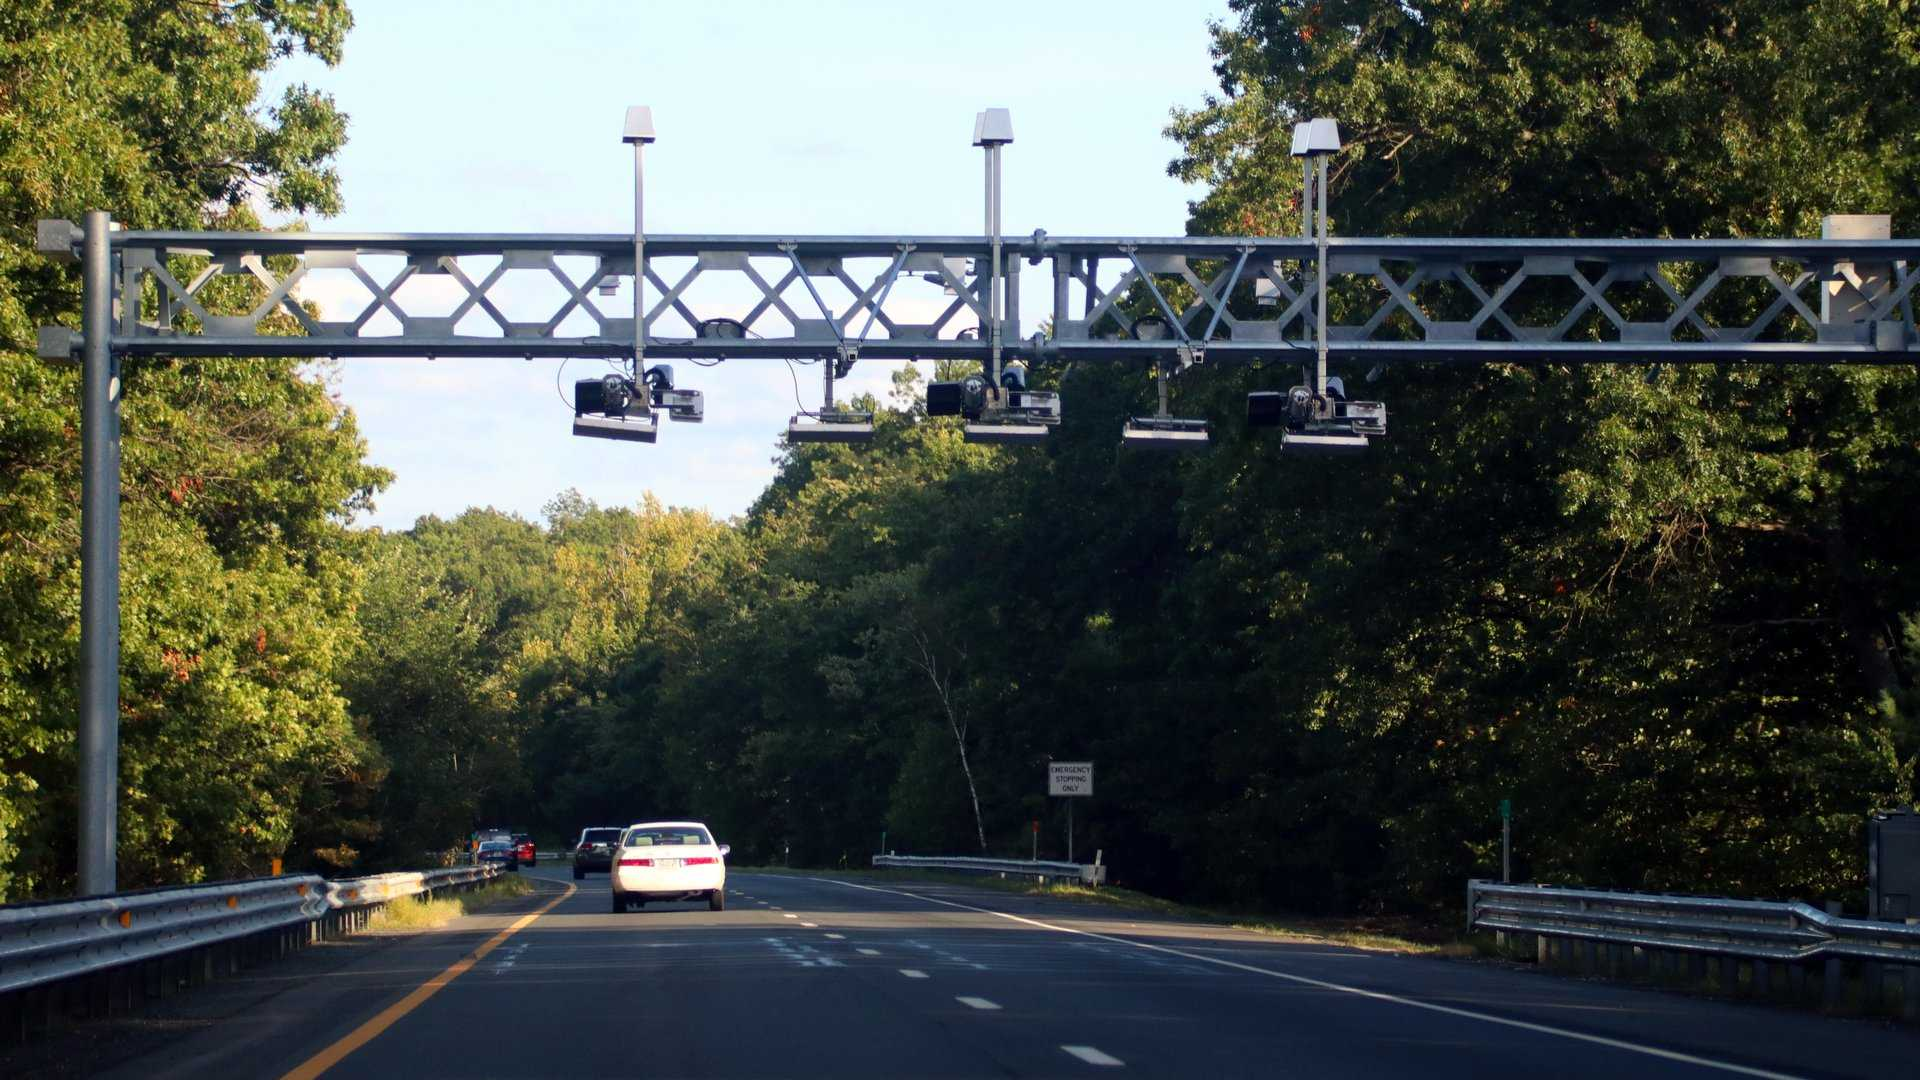 Mass. Turnpike Open Road Tolling